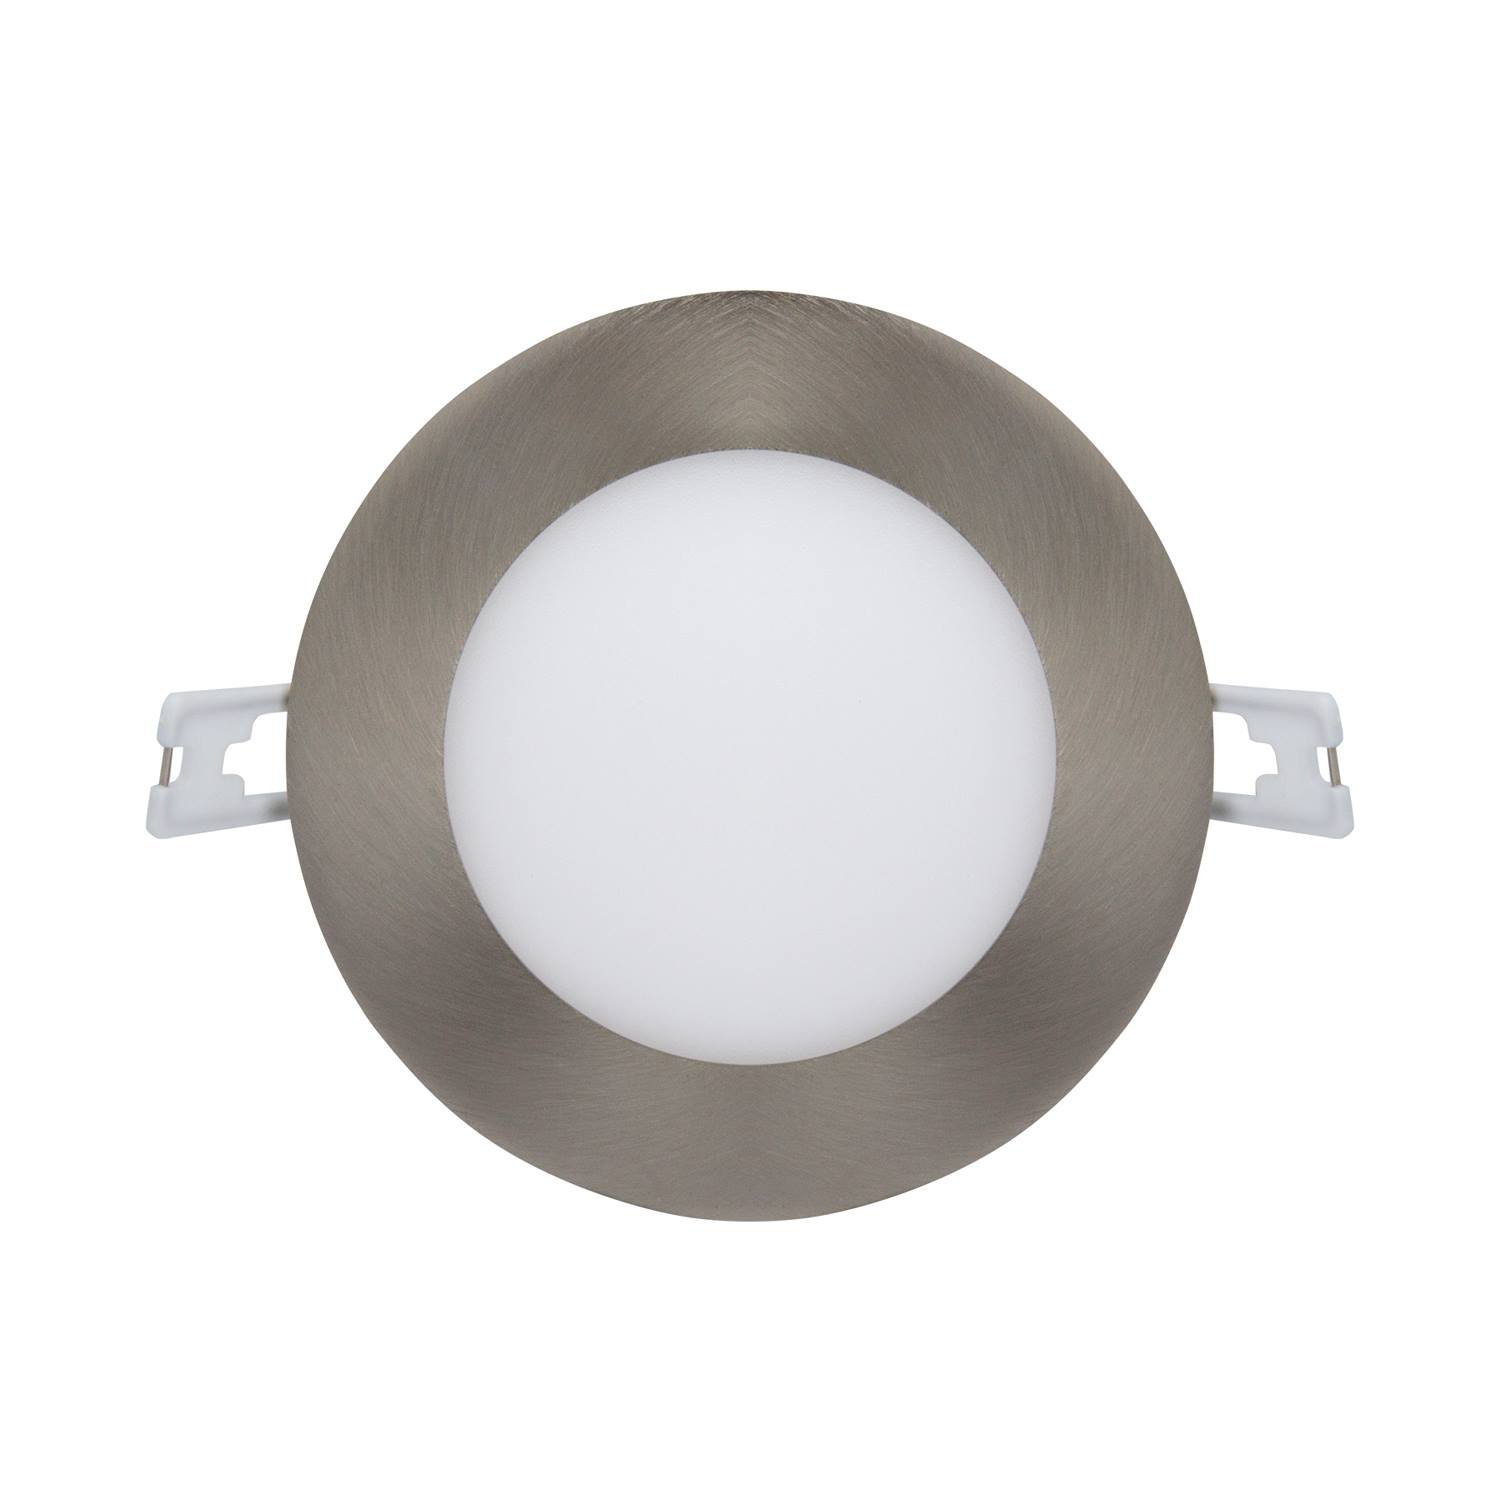 LED Recessed Light Fixture 4 inch Round with Driver, 5000K Daylight, 12W, 720 Lumens, 120V, Low Profile, Dimmable, Energy Star and IC Rated, Brushed Nickel Trim, 1 Pack